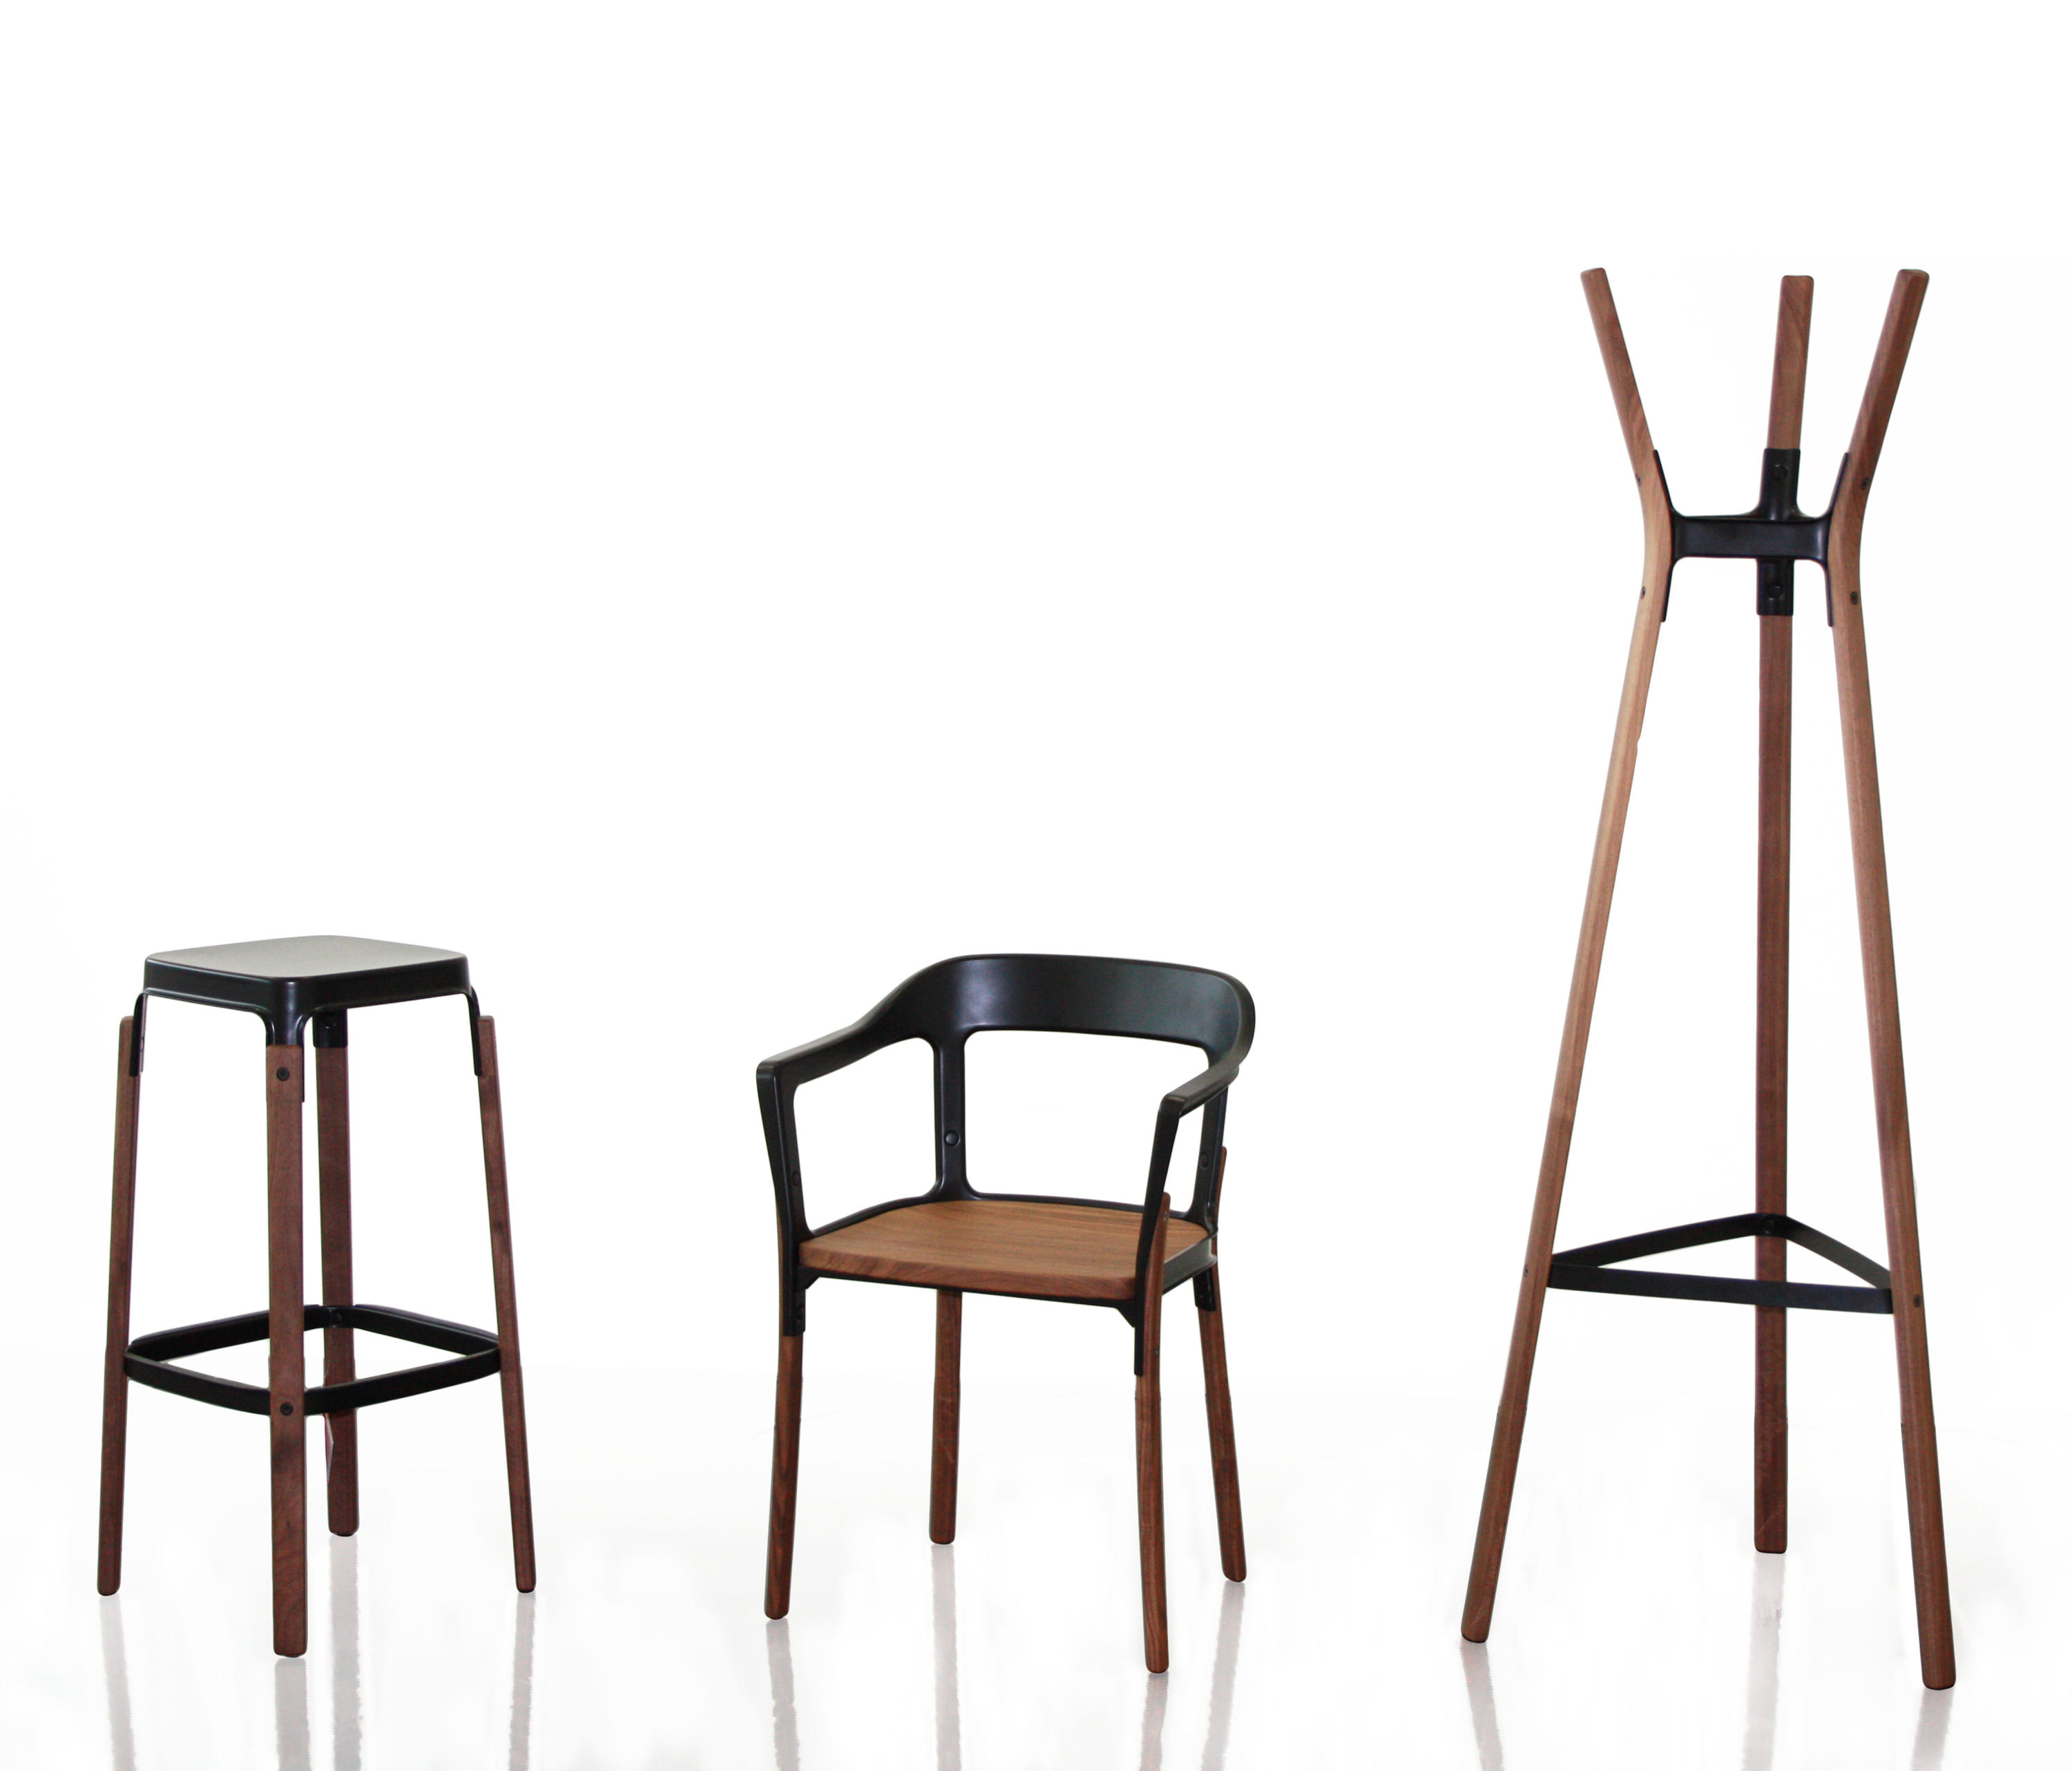 Steelwood chair visitors chairs side chairs from magis for Magis stuhl